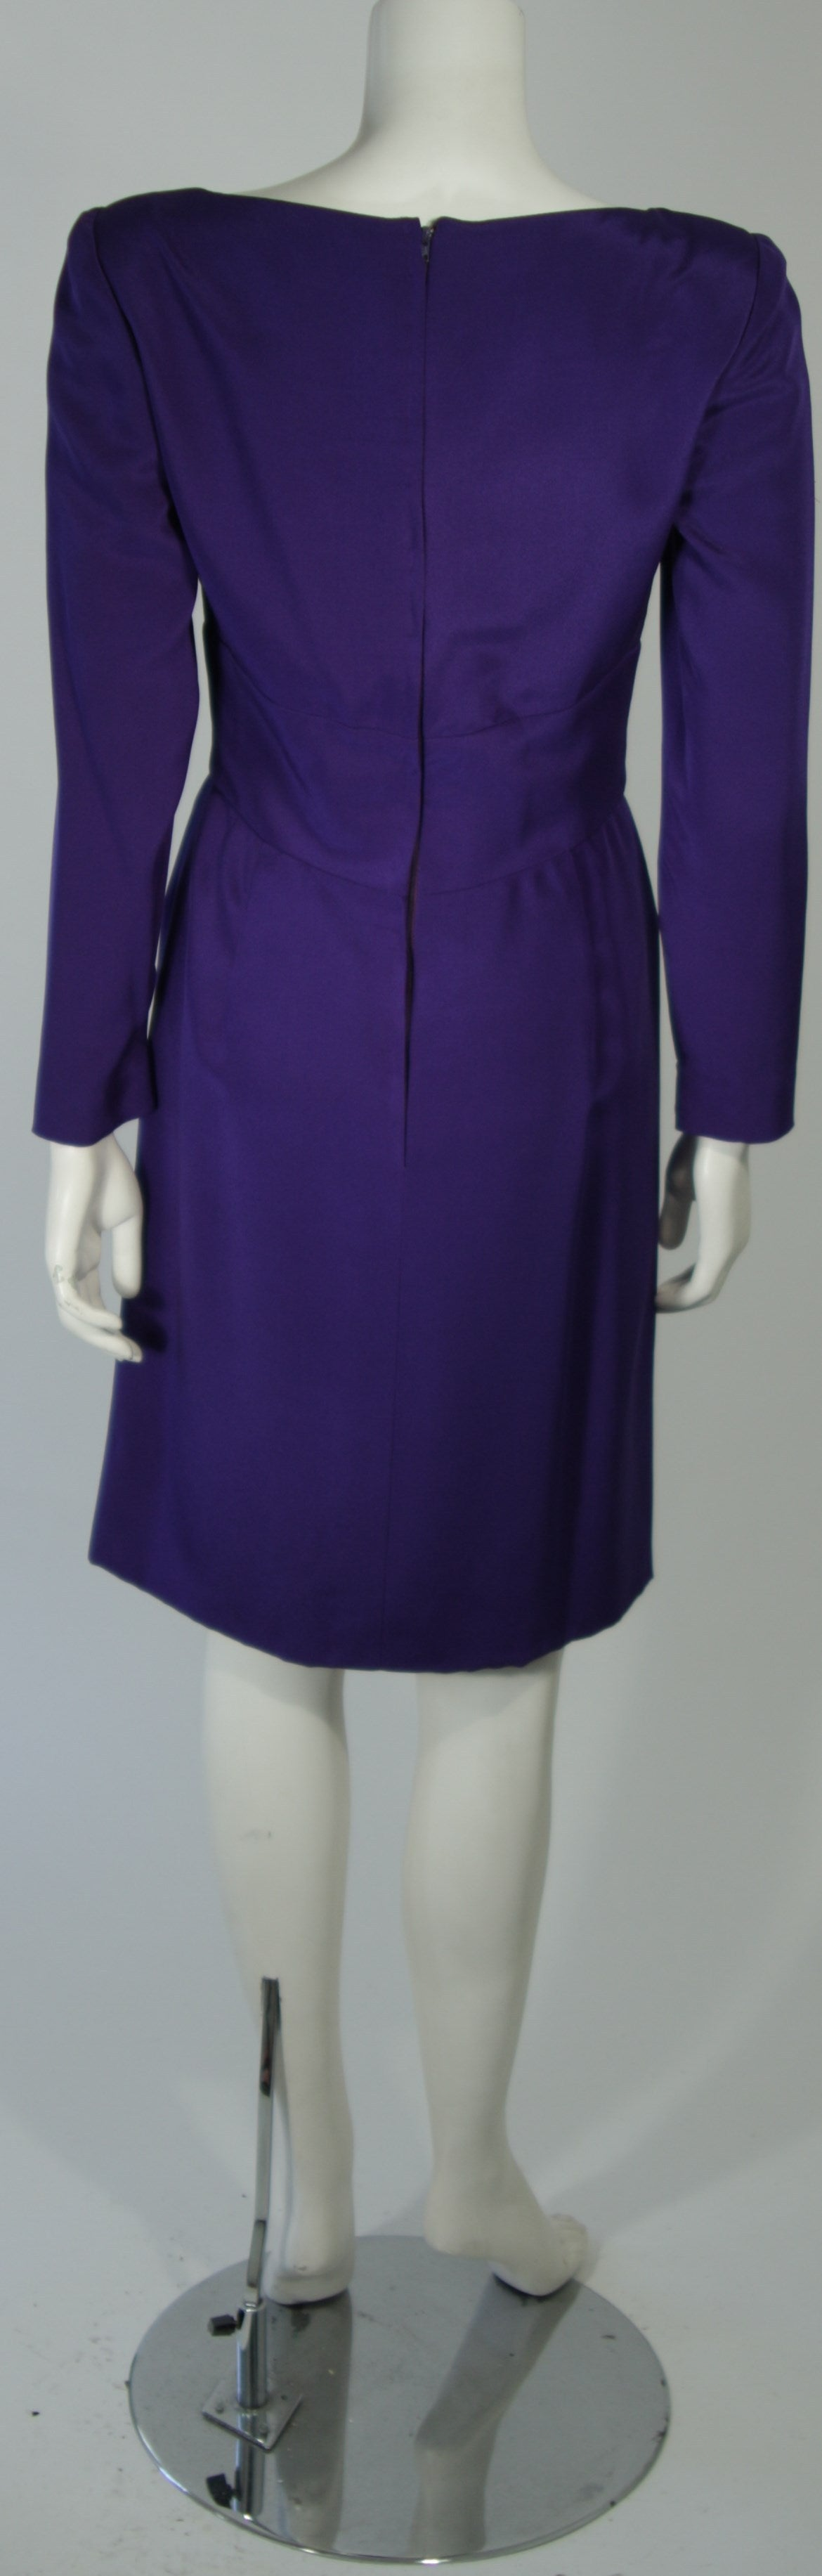 Travilla Purple Silk Long Sleeve Cocktail Dress with Draping Size 8 For Sale 5